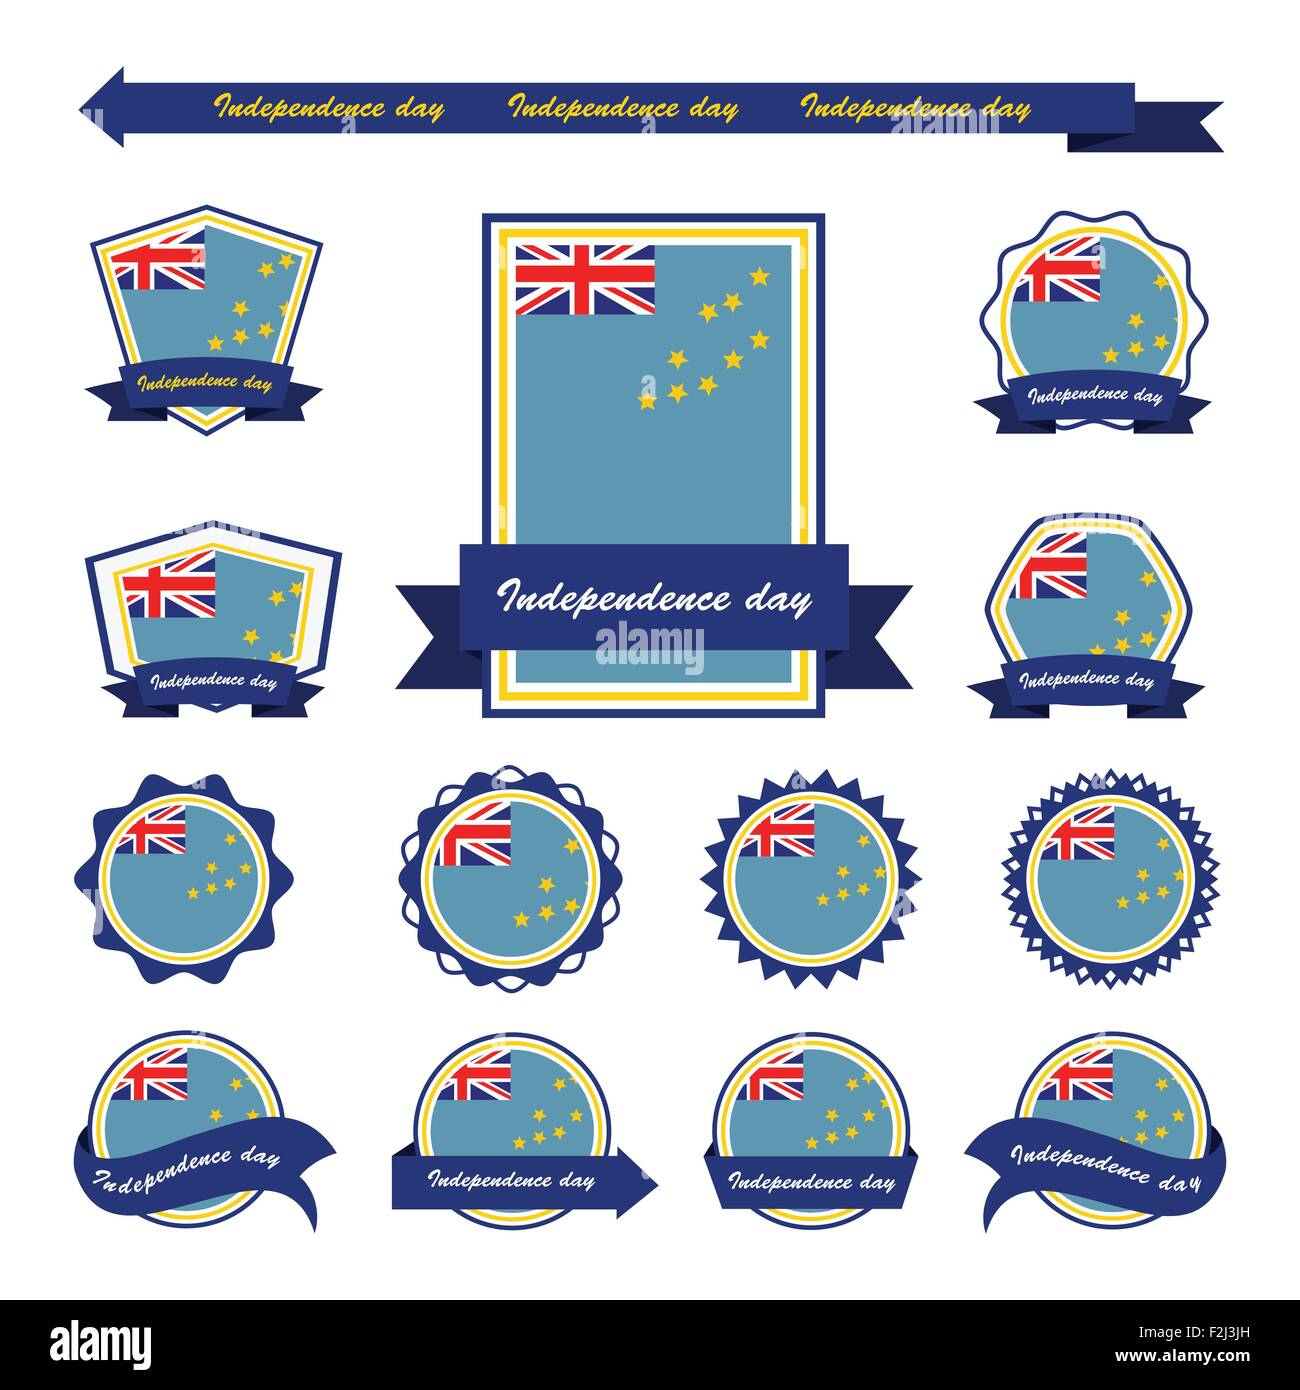 Tuvalu independence day flags infographic design - Stock Vector